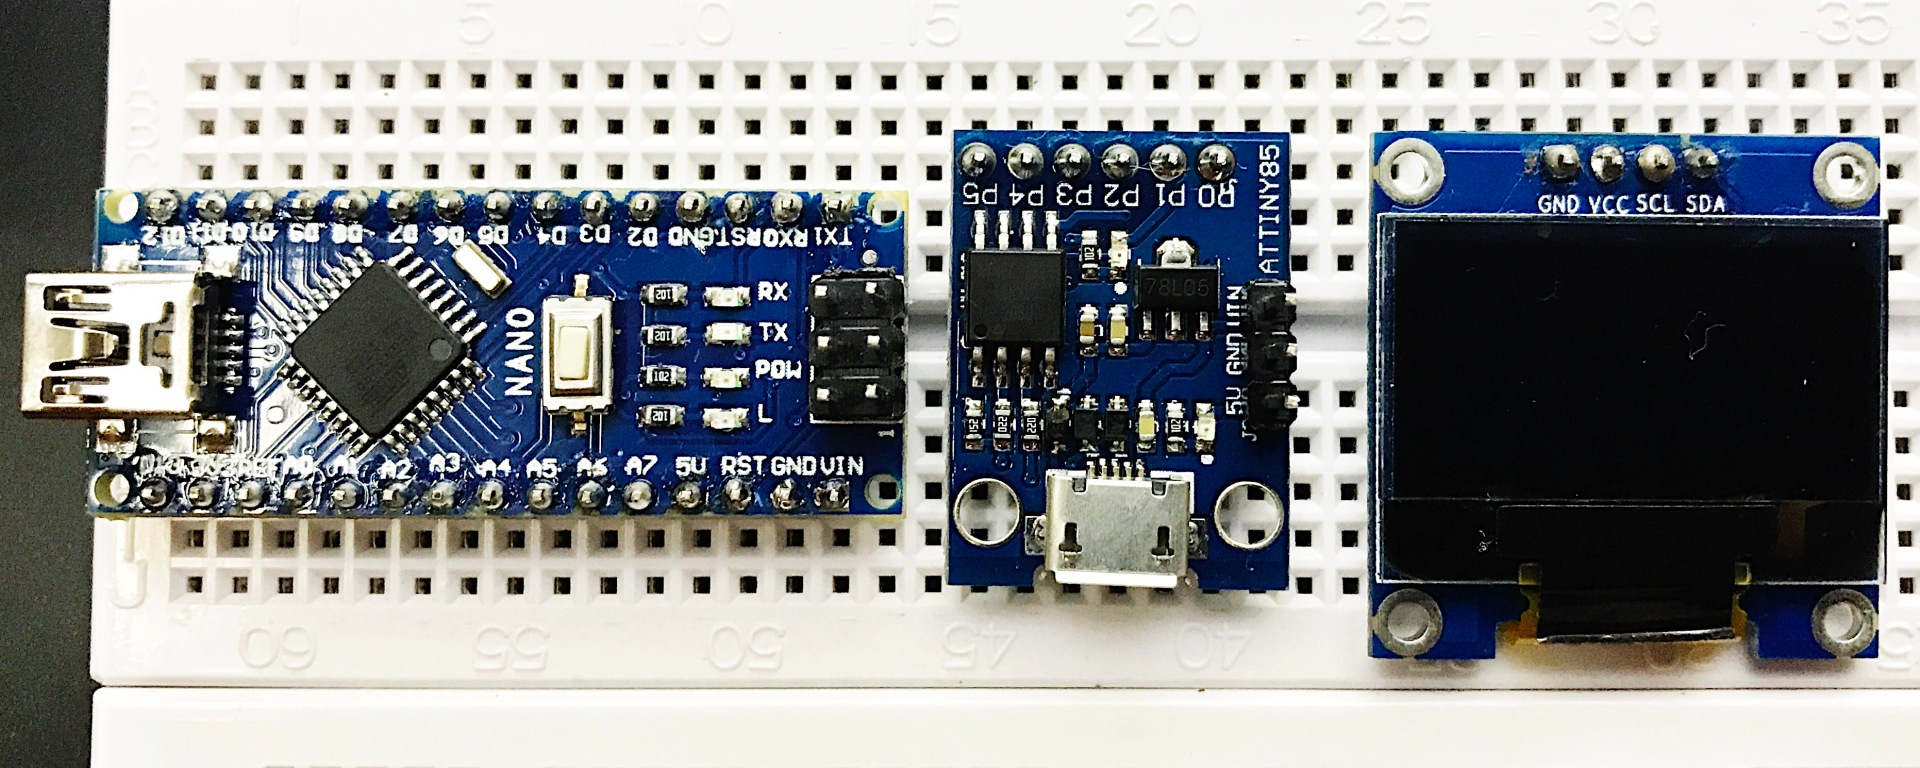 OLED (I2C) With ATtiny85 – Eldon B  Tenorio: My Thoughts, My Views